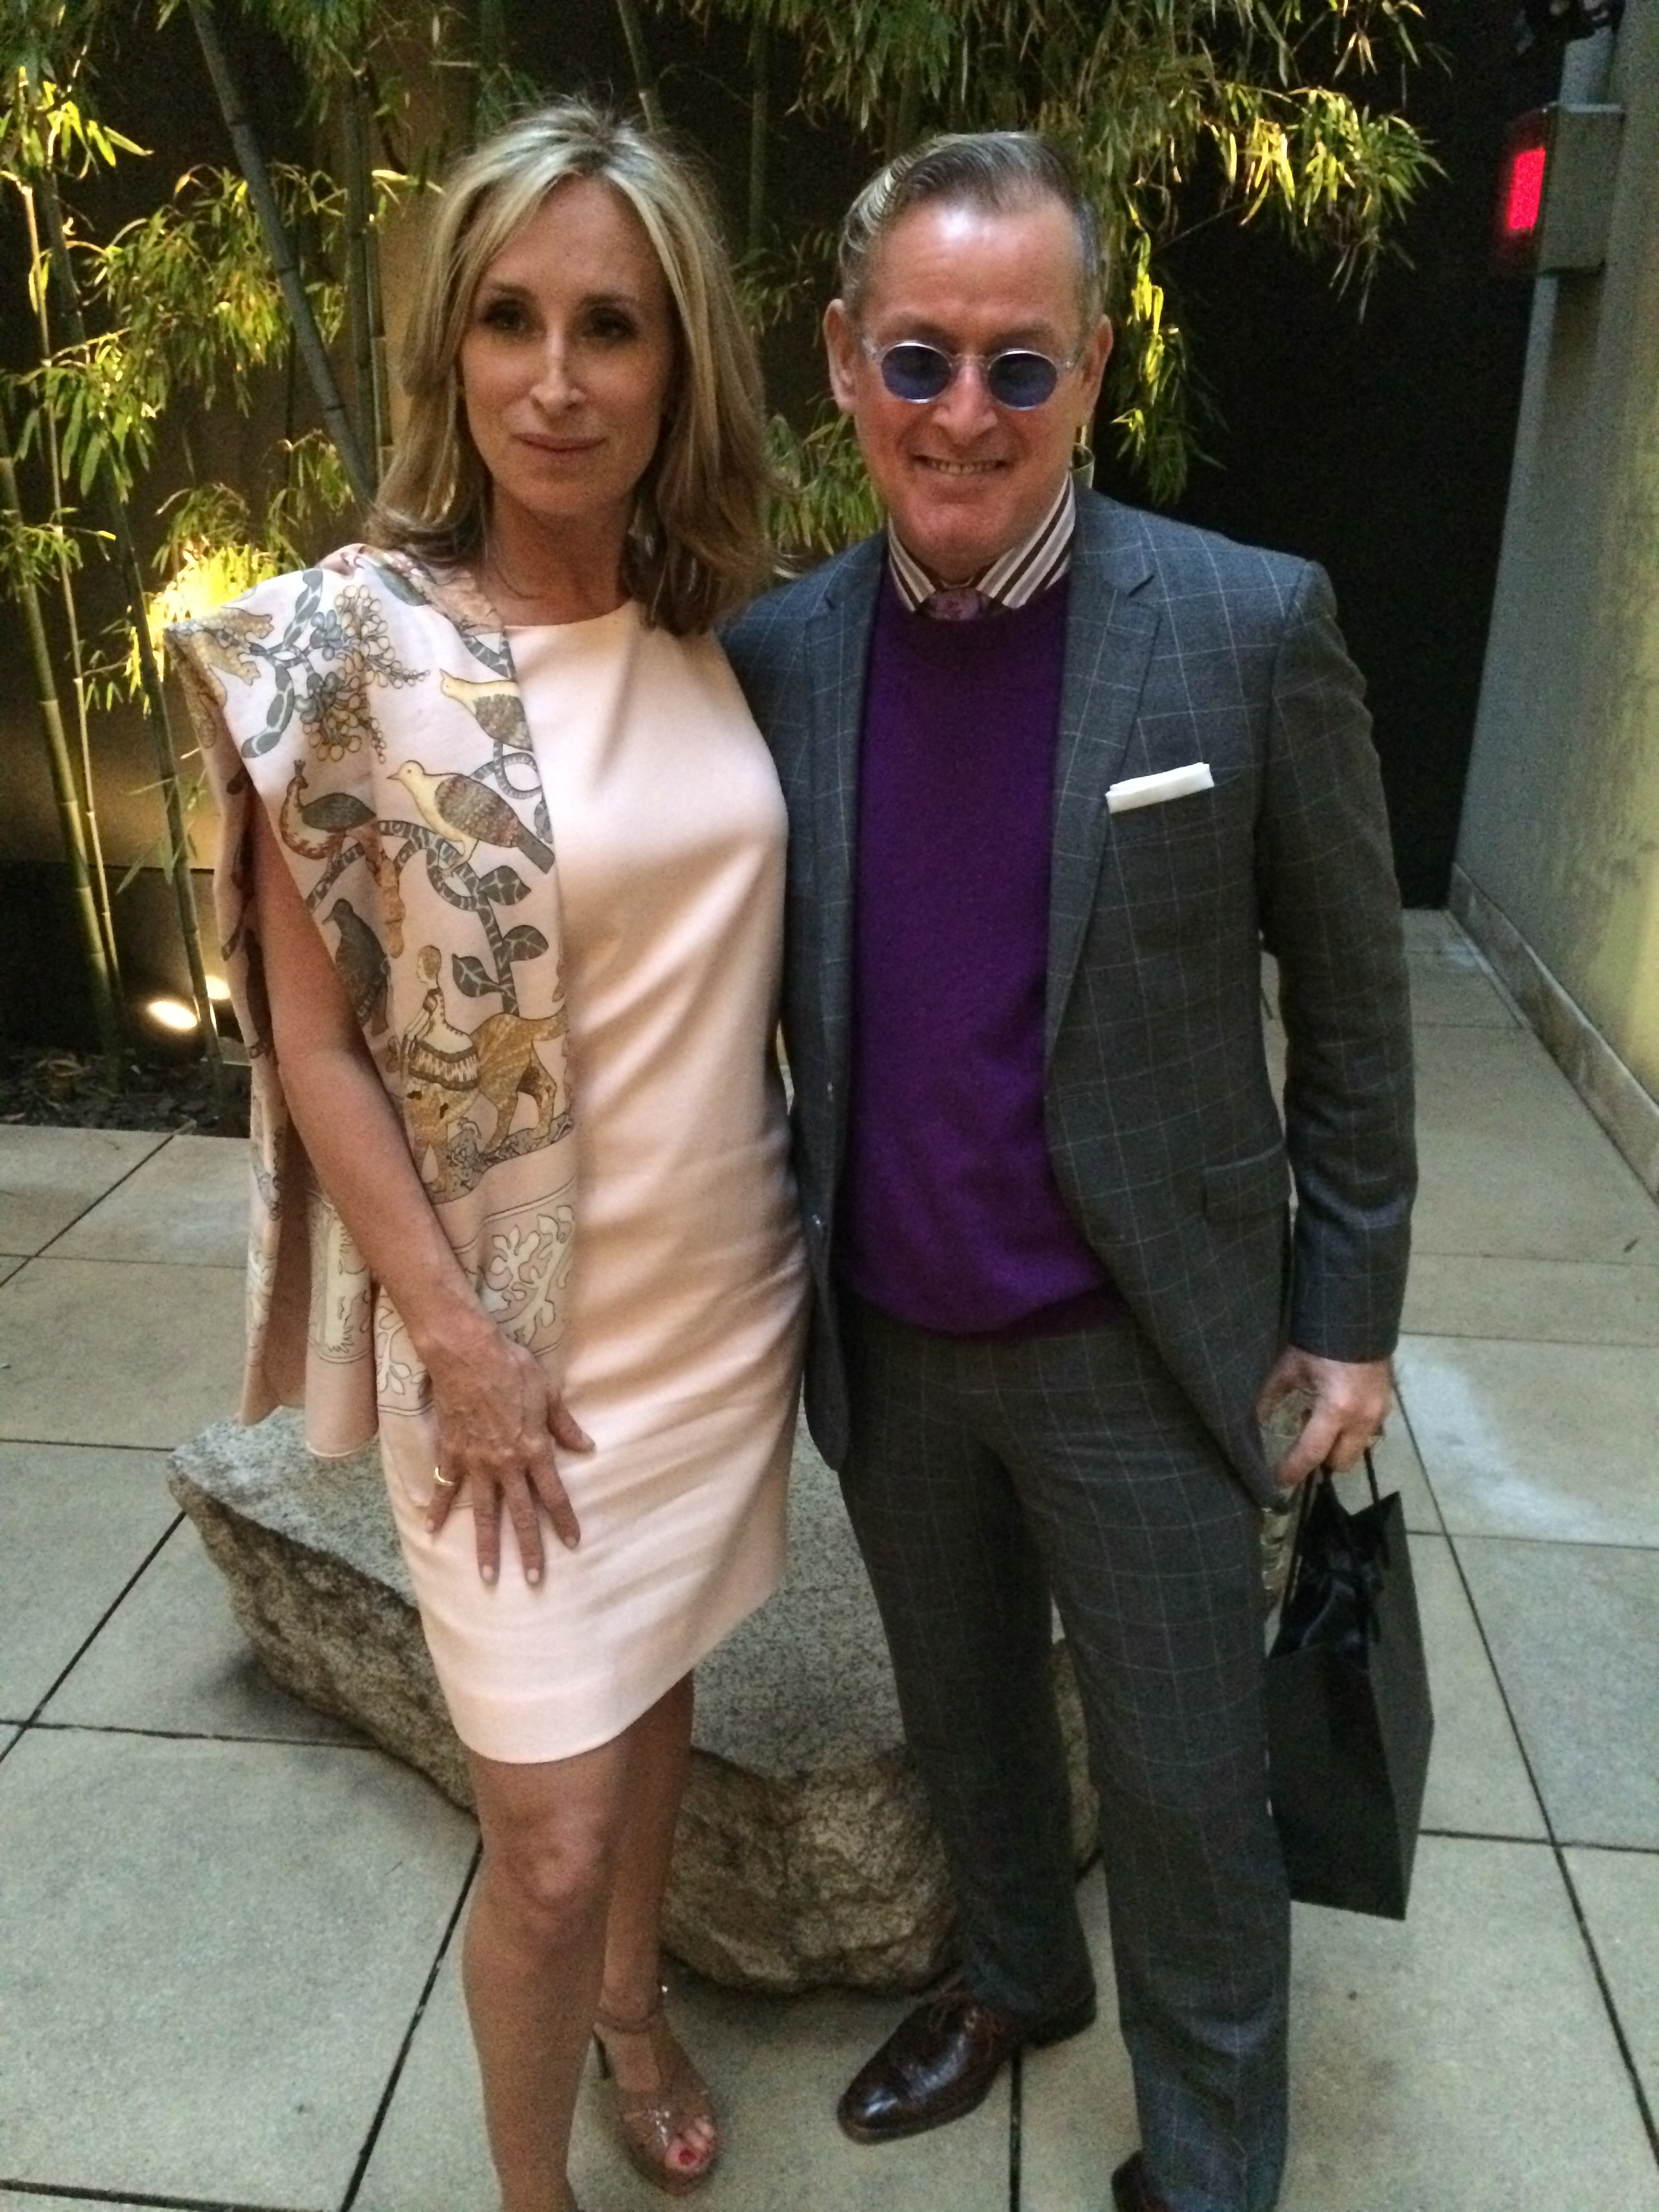 Ms. Morgan and Mr. Frazier in the courtyard at Donna Karan's Madison Avenue boutique.